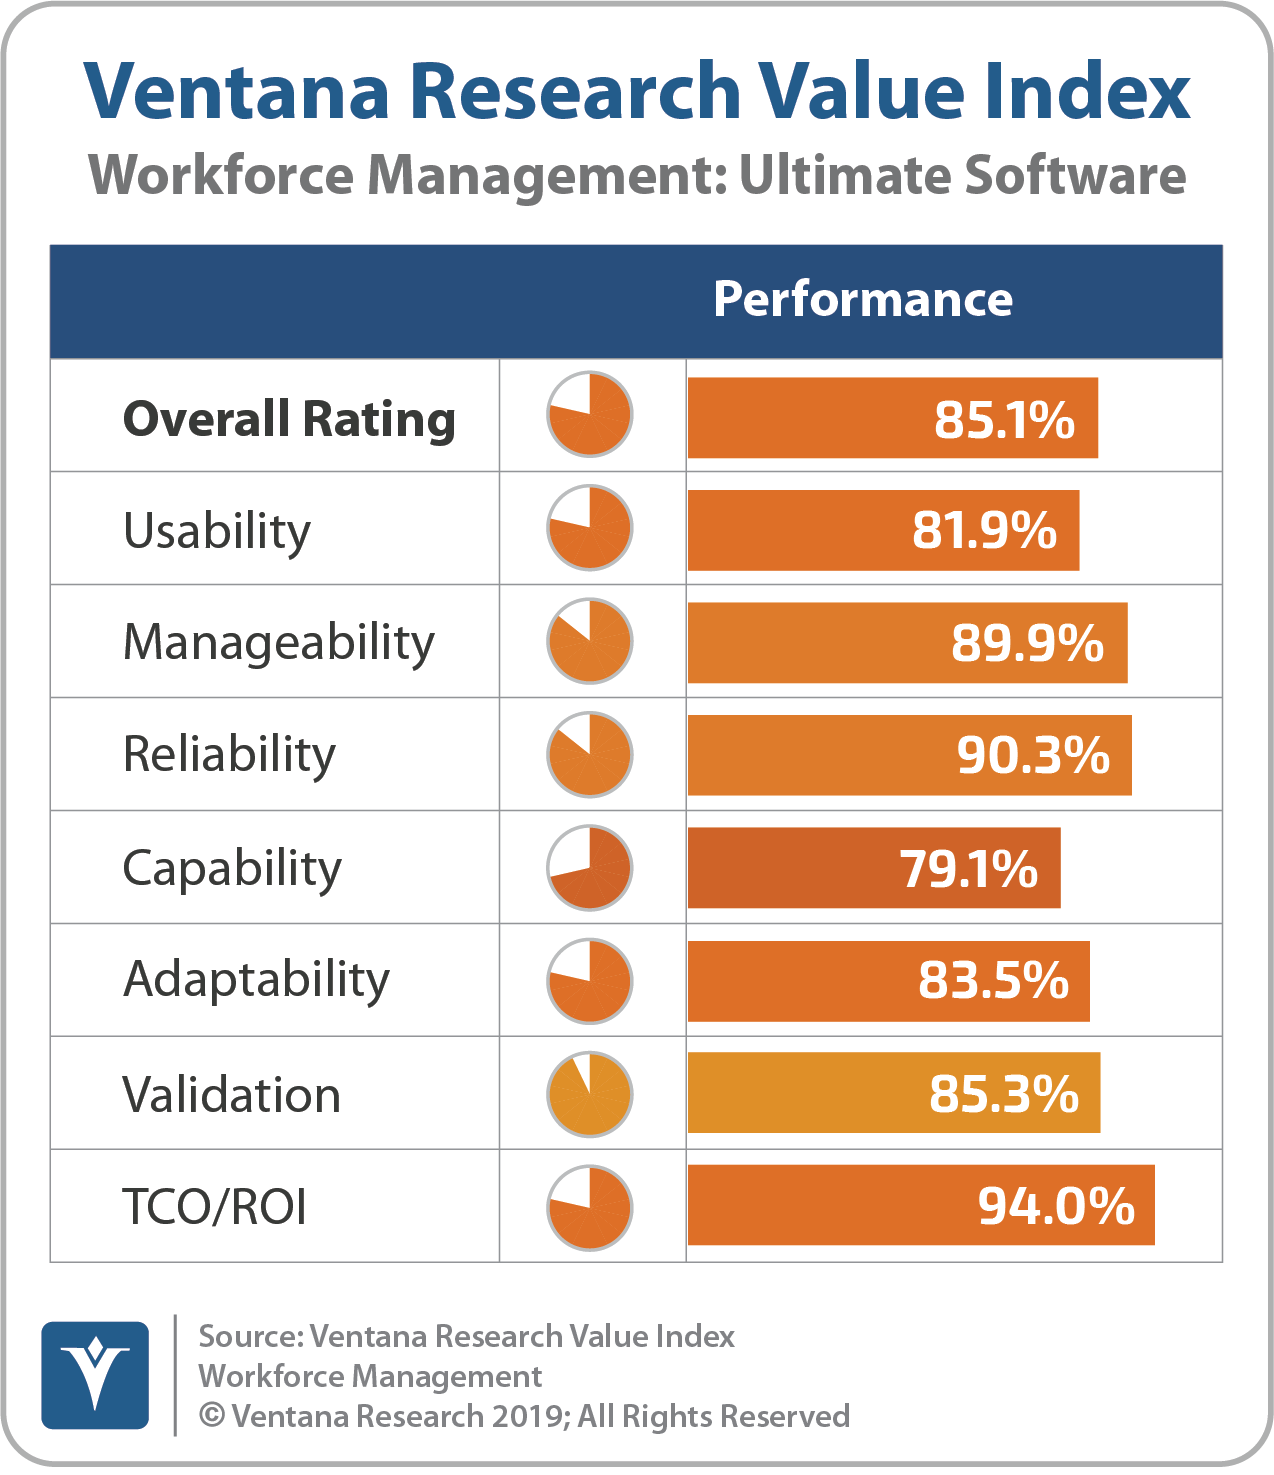 Ventana_Research_Value_Index_Workforce_Management_2019_Ultimate